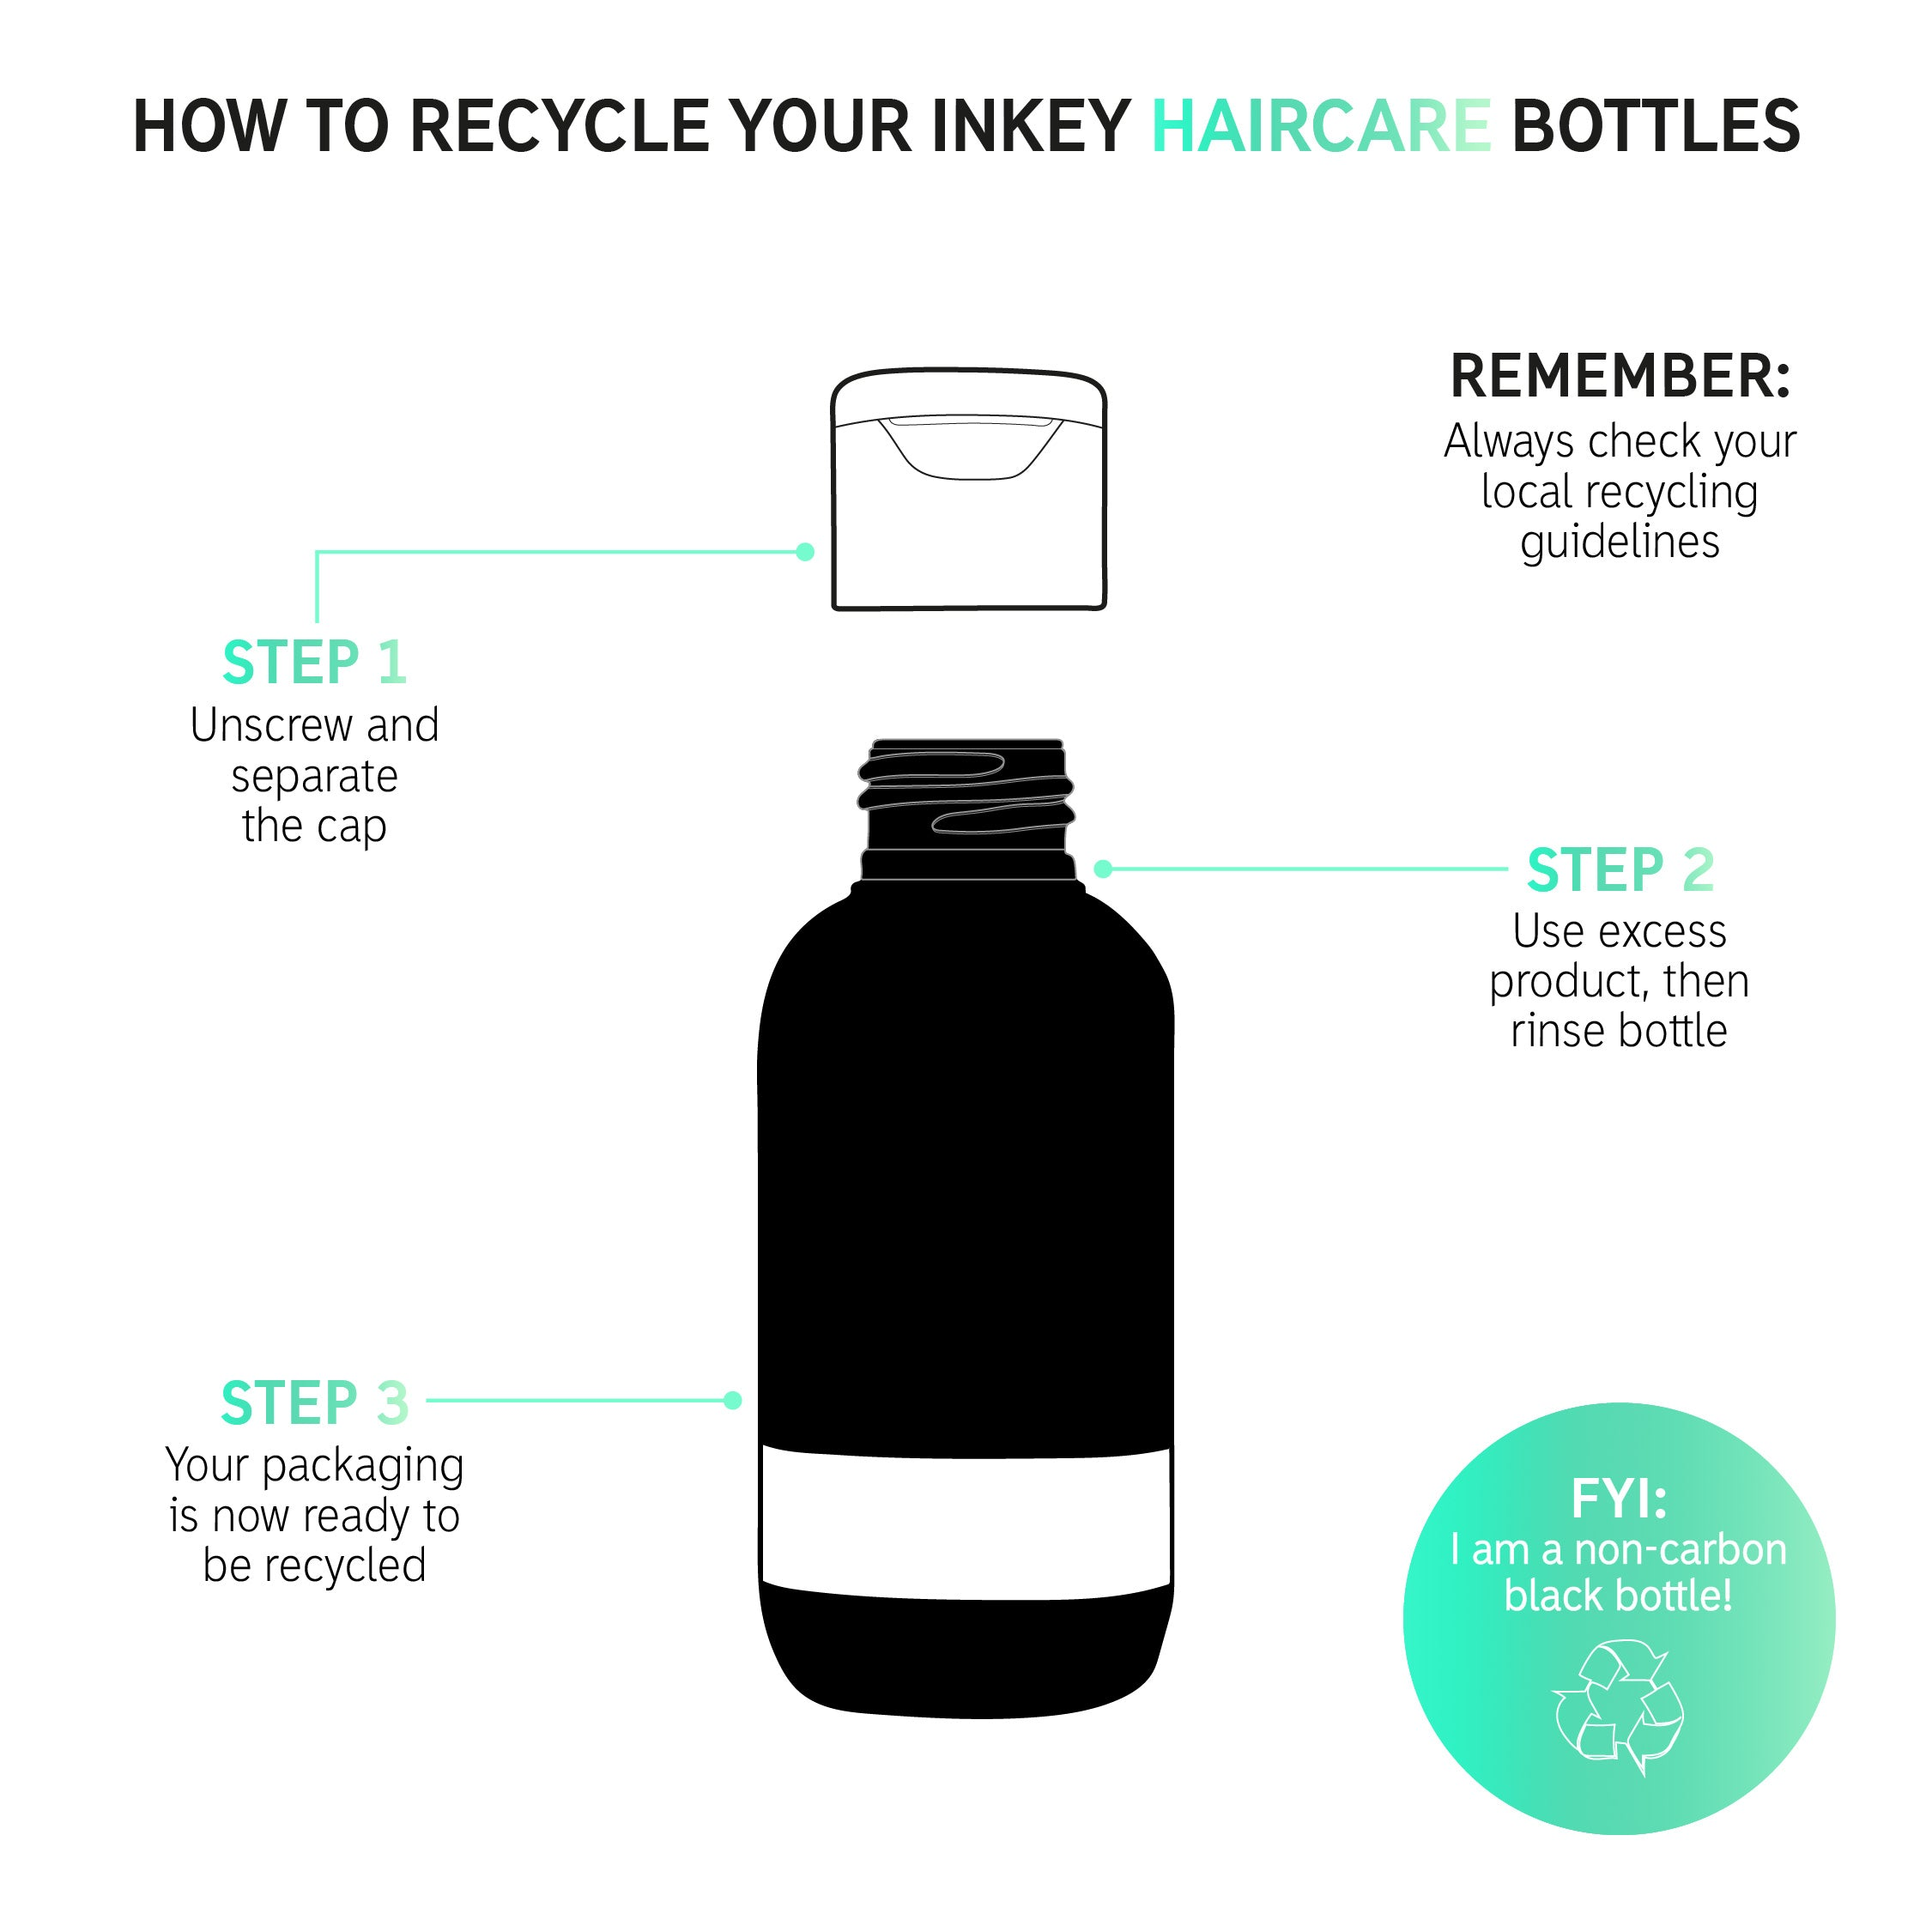 How to recycle the bottle